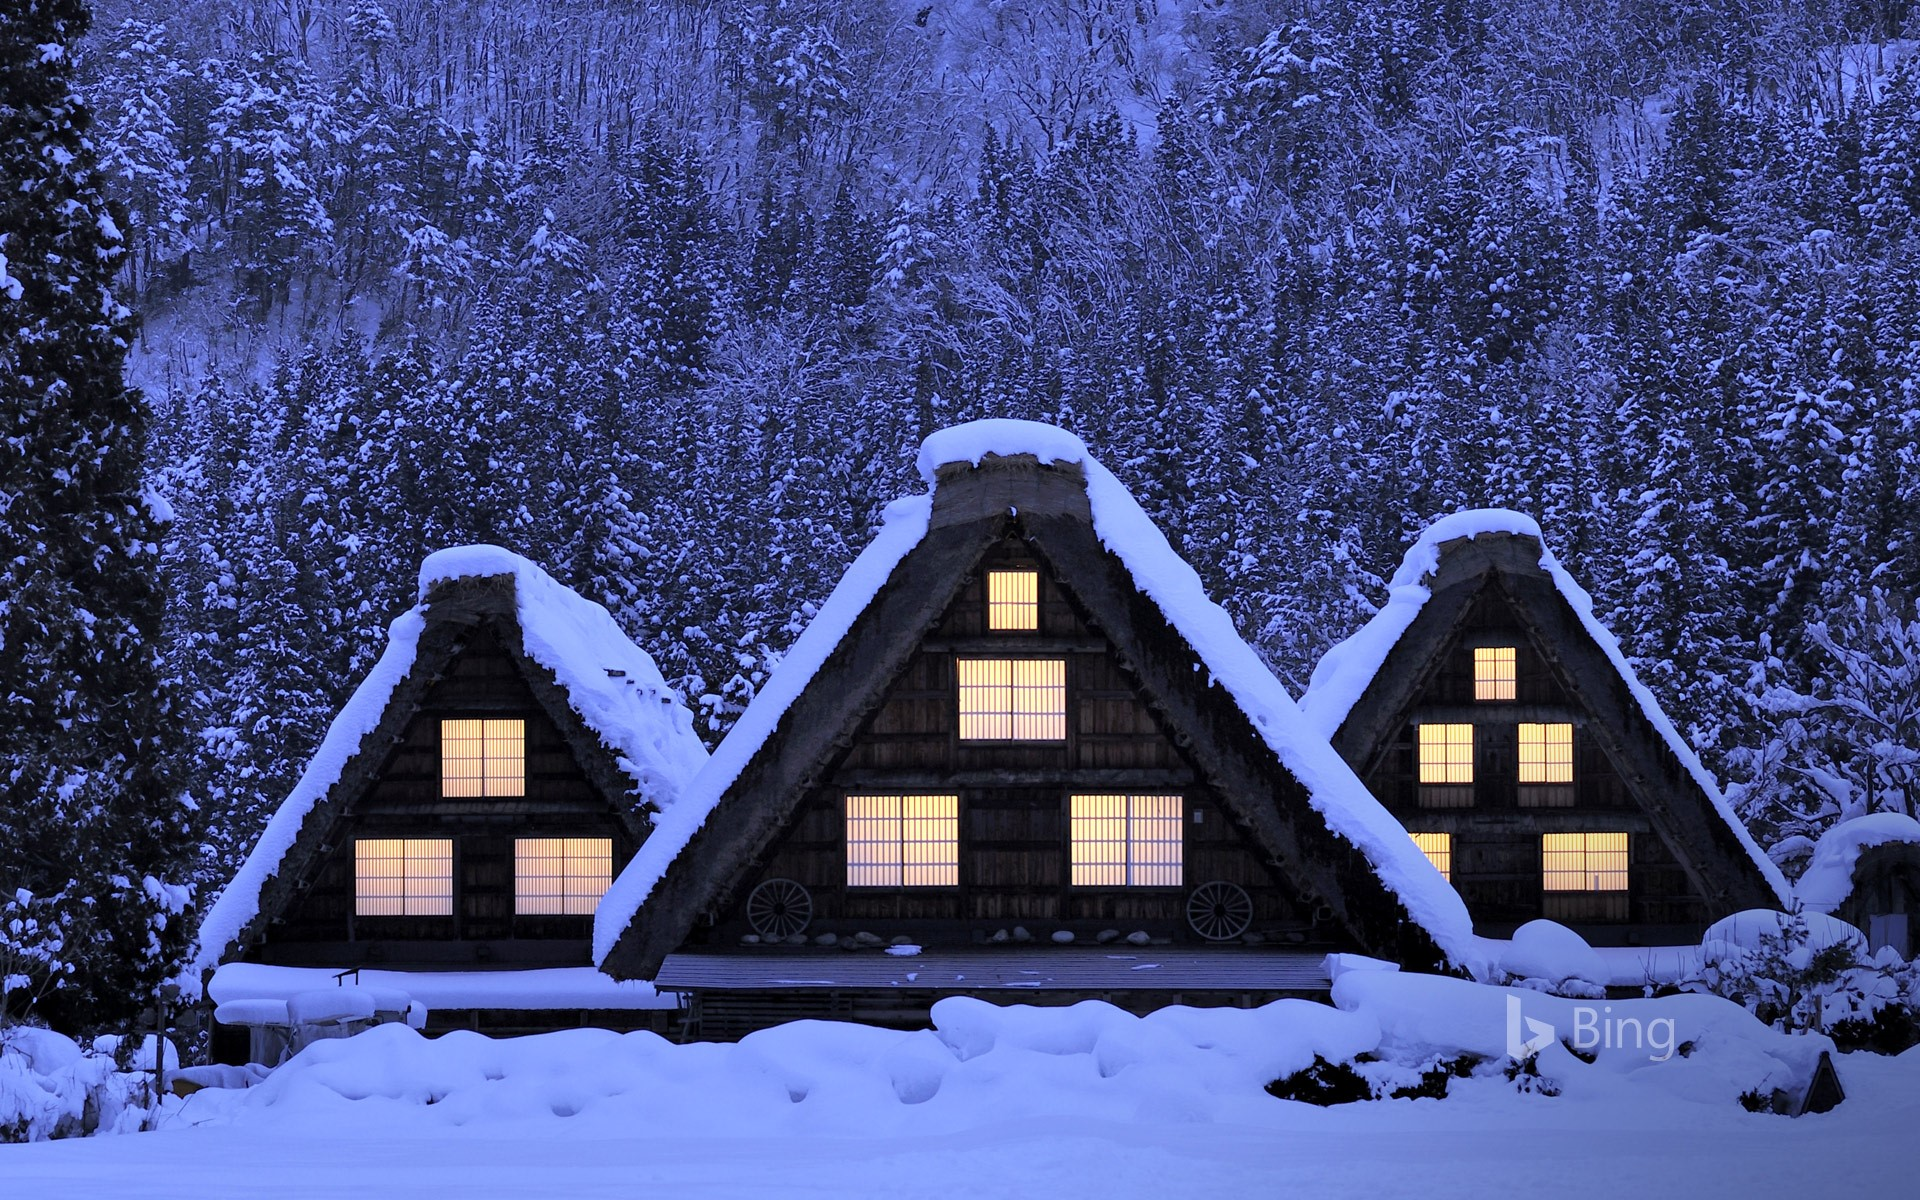 Snow-covered Gassho-style houses in Ogimachi Village in Shirakawa-gō, Japan